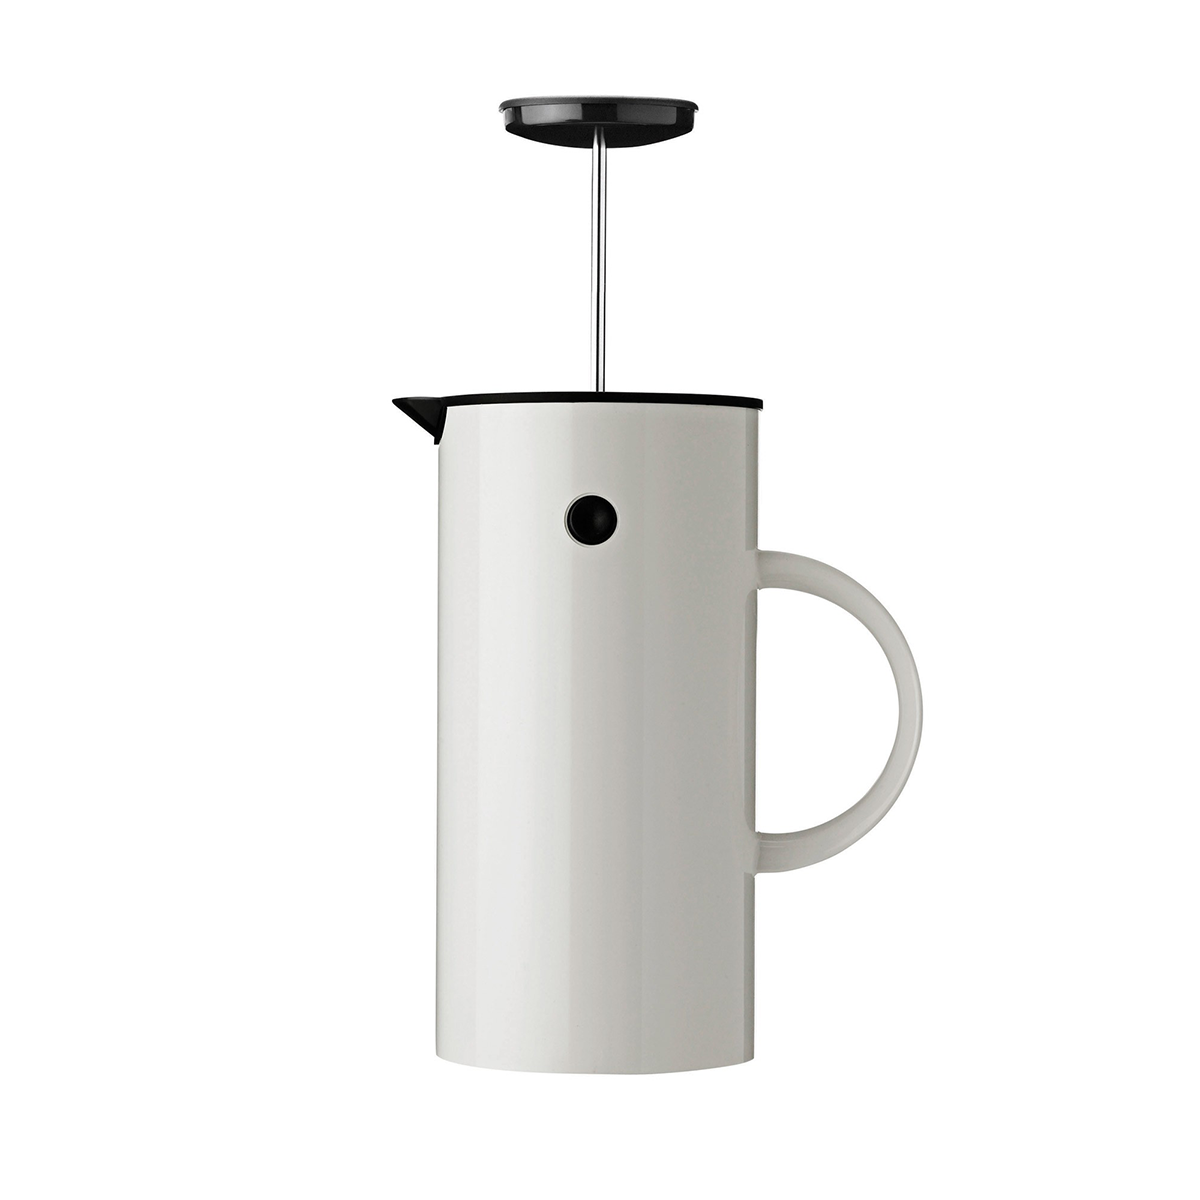 Stelton EM Press Coffee Maker 1.0L 啄木鳥 咖啡濾壓壺